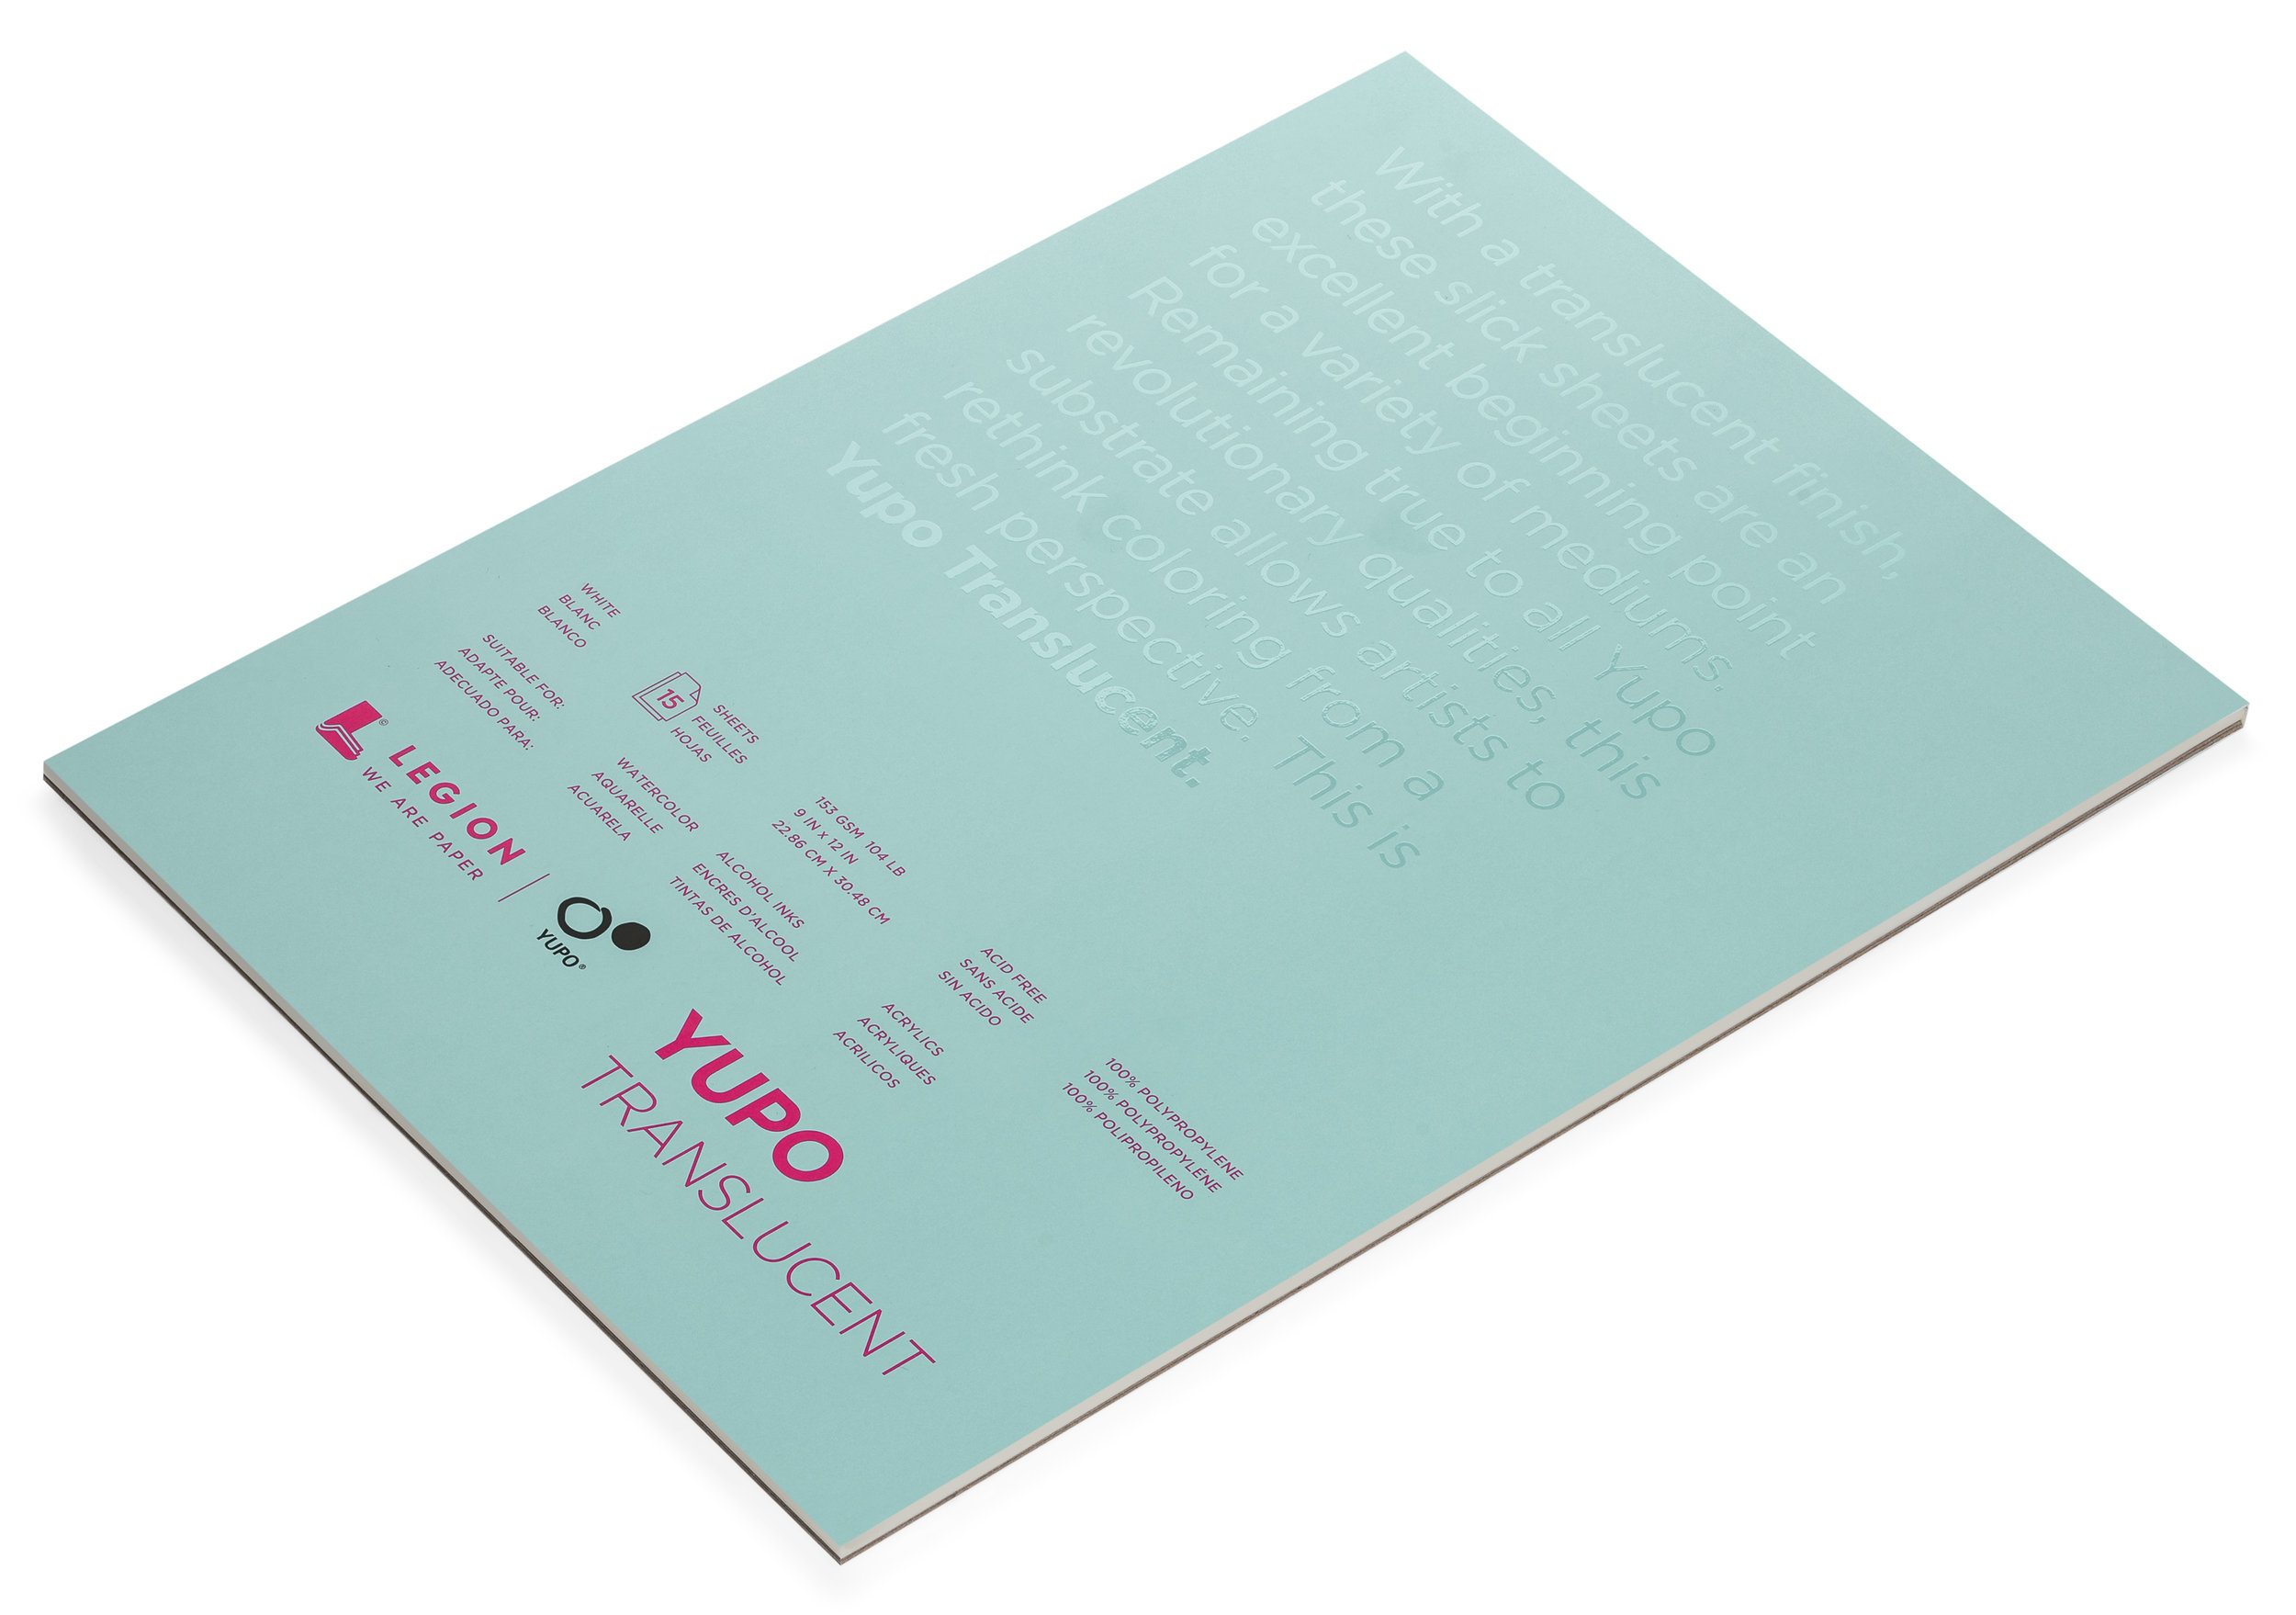 Yupo Translucent pad , a plastic paper for painting, inks